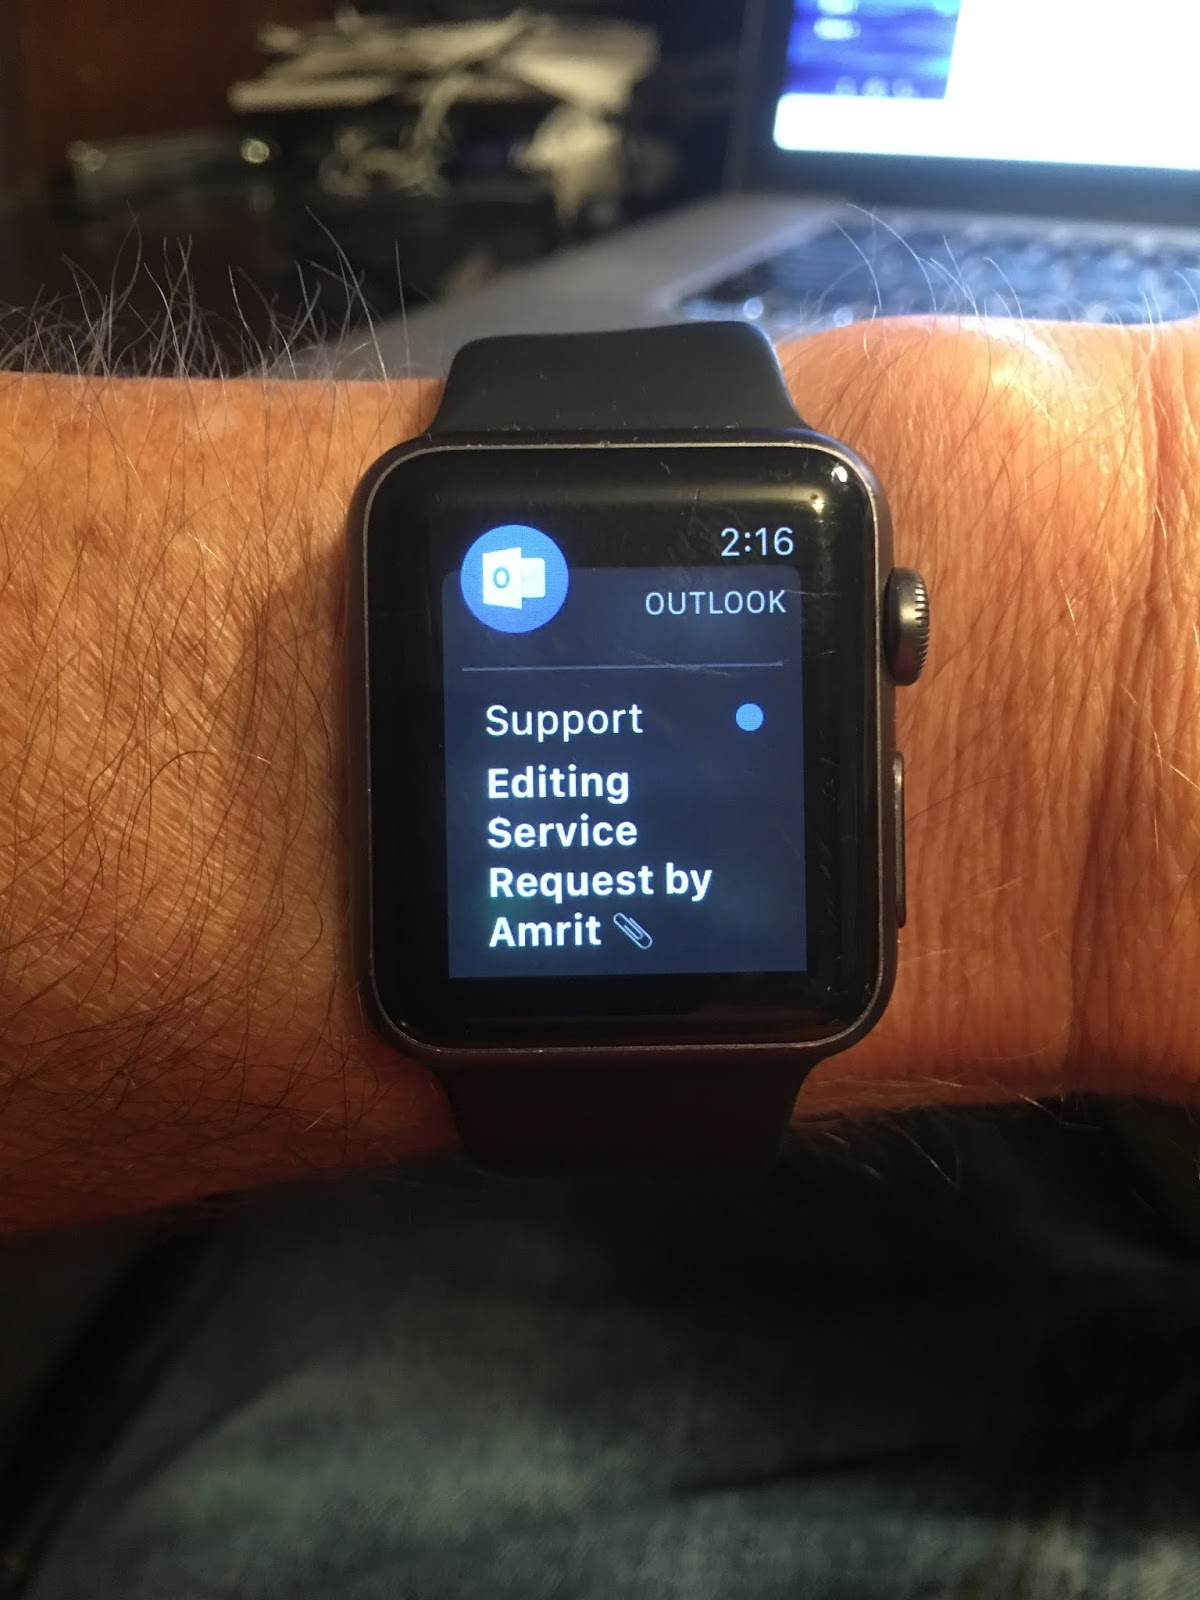 how to get notification on phone and apple watch